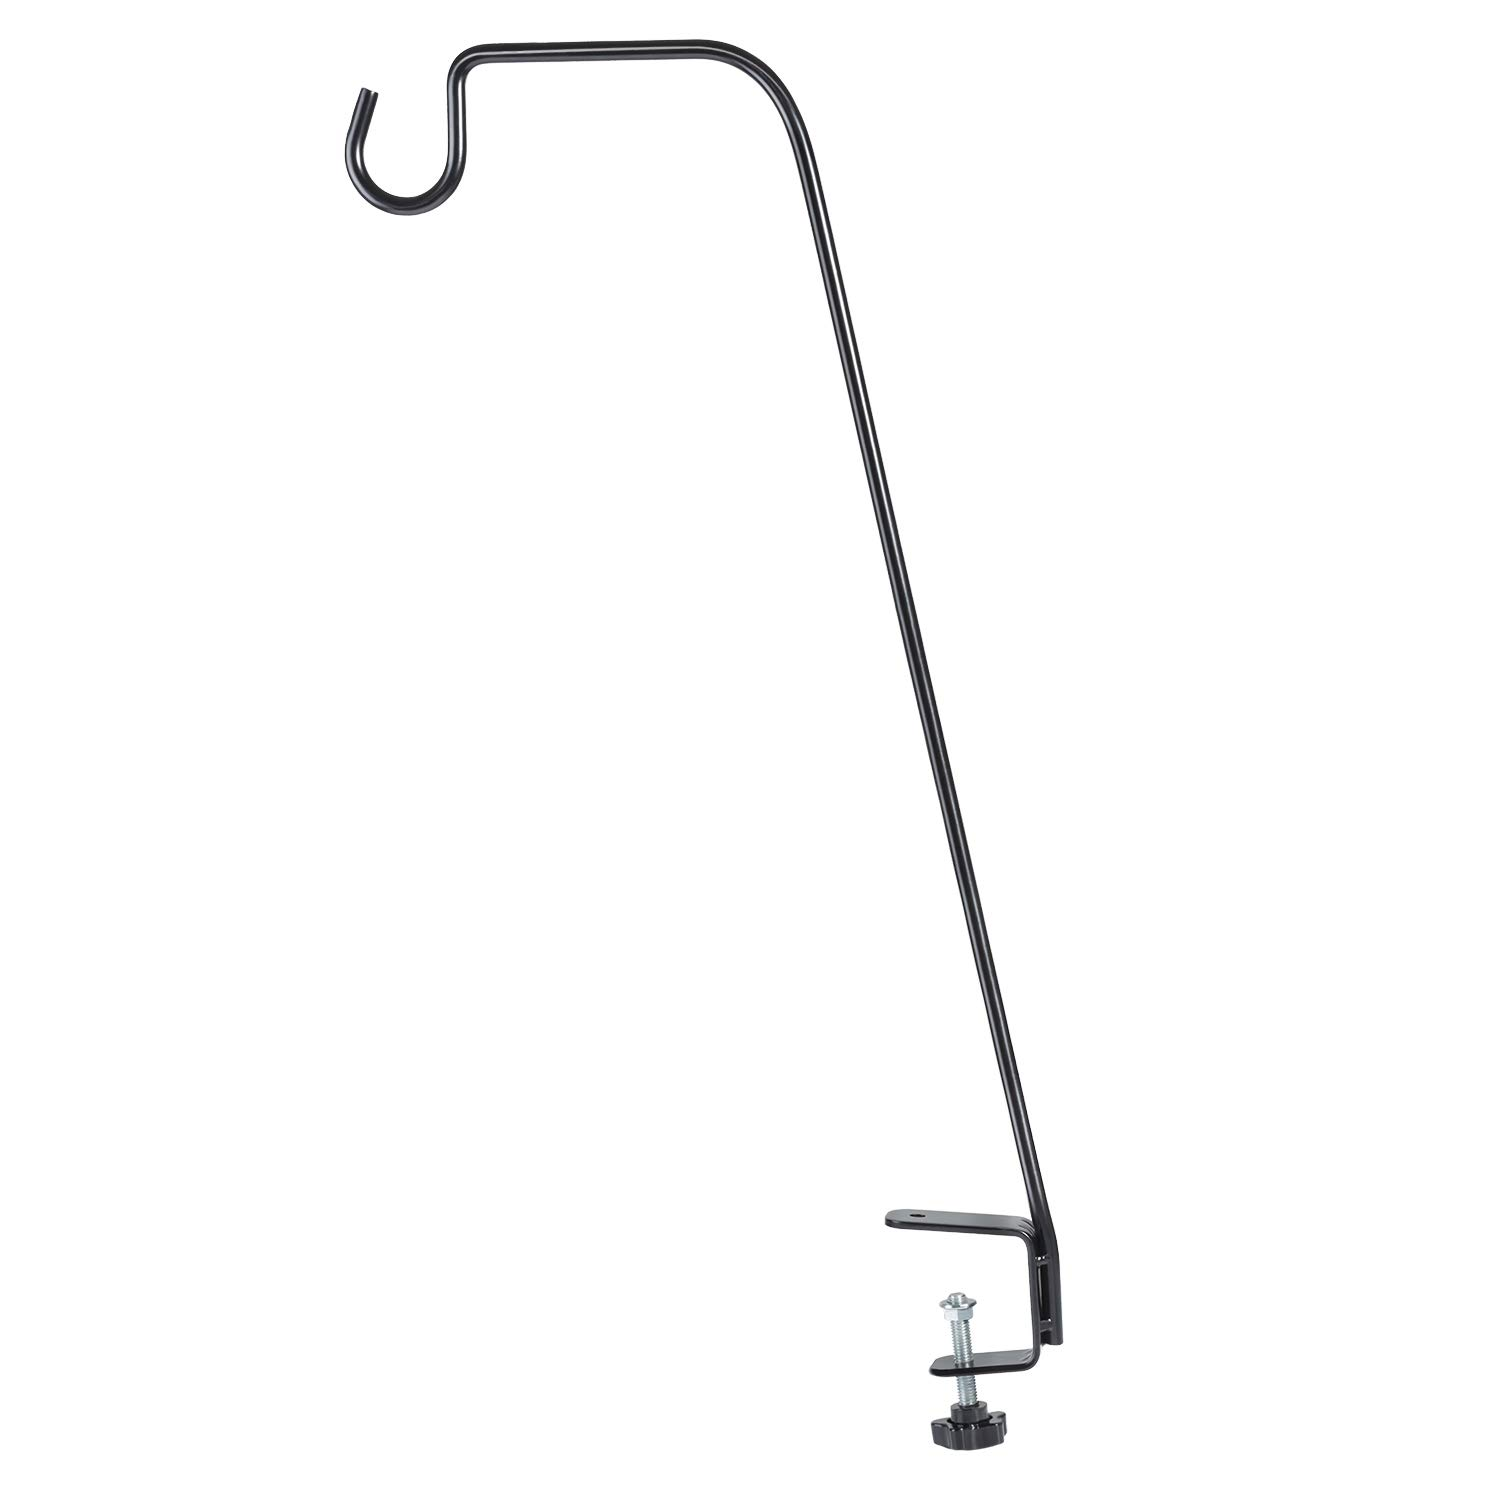 BOLITE 18013 Deck Bird Feeder Hanger, Heavy Duty Extended Reach Deck Hook for Bird Feeders, Planters, Lanterns, Wind Chimes, Holiday Decorations and More